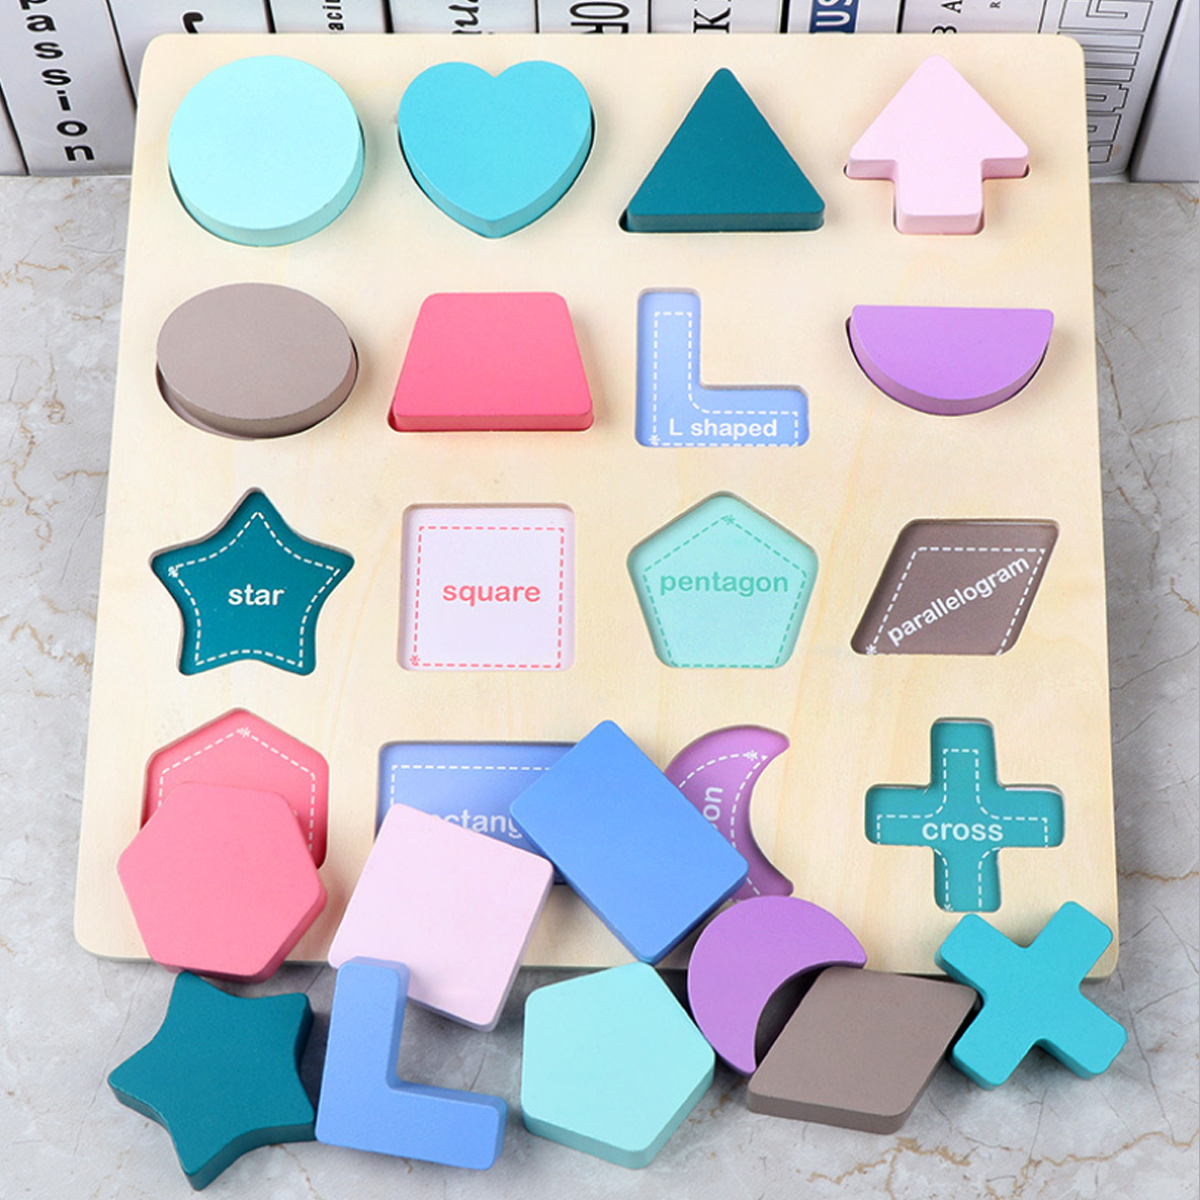 Alphanumeric Board Wooden Jigsaw Volume Wooden Baby Young Children Early Education Educational Toys